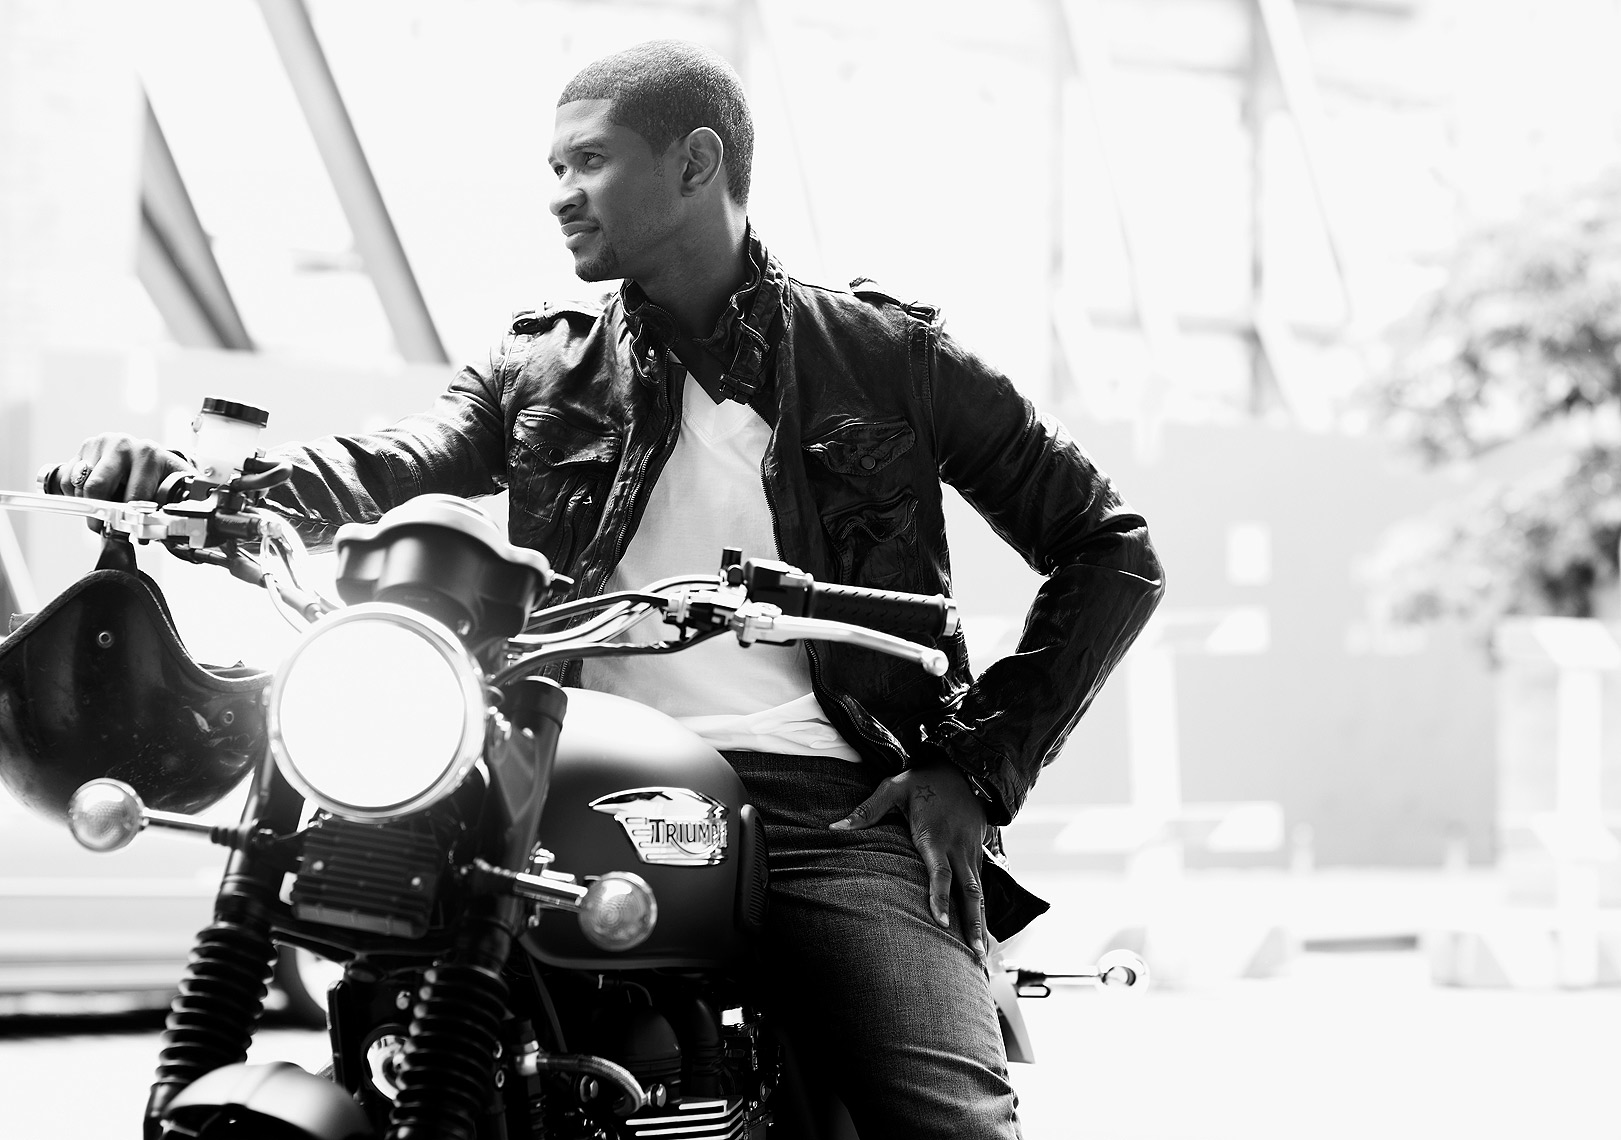 Usher-by-Robert-Ascroft-motorcycle.jpg